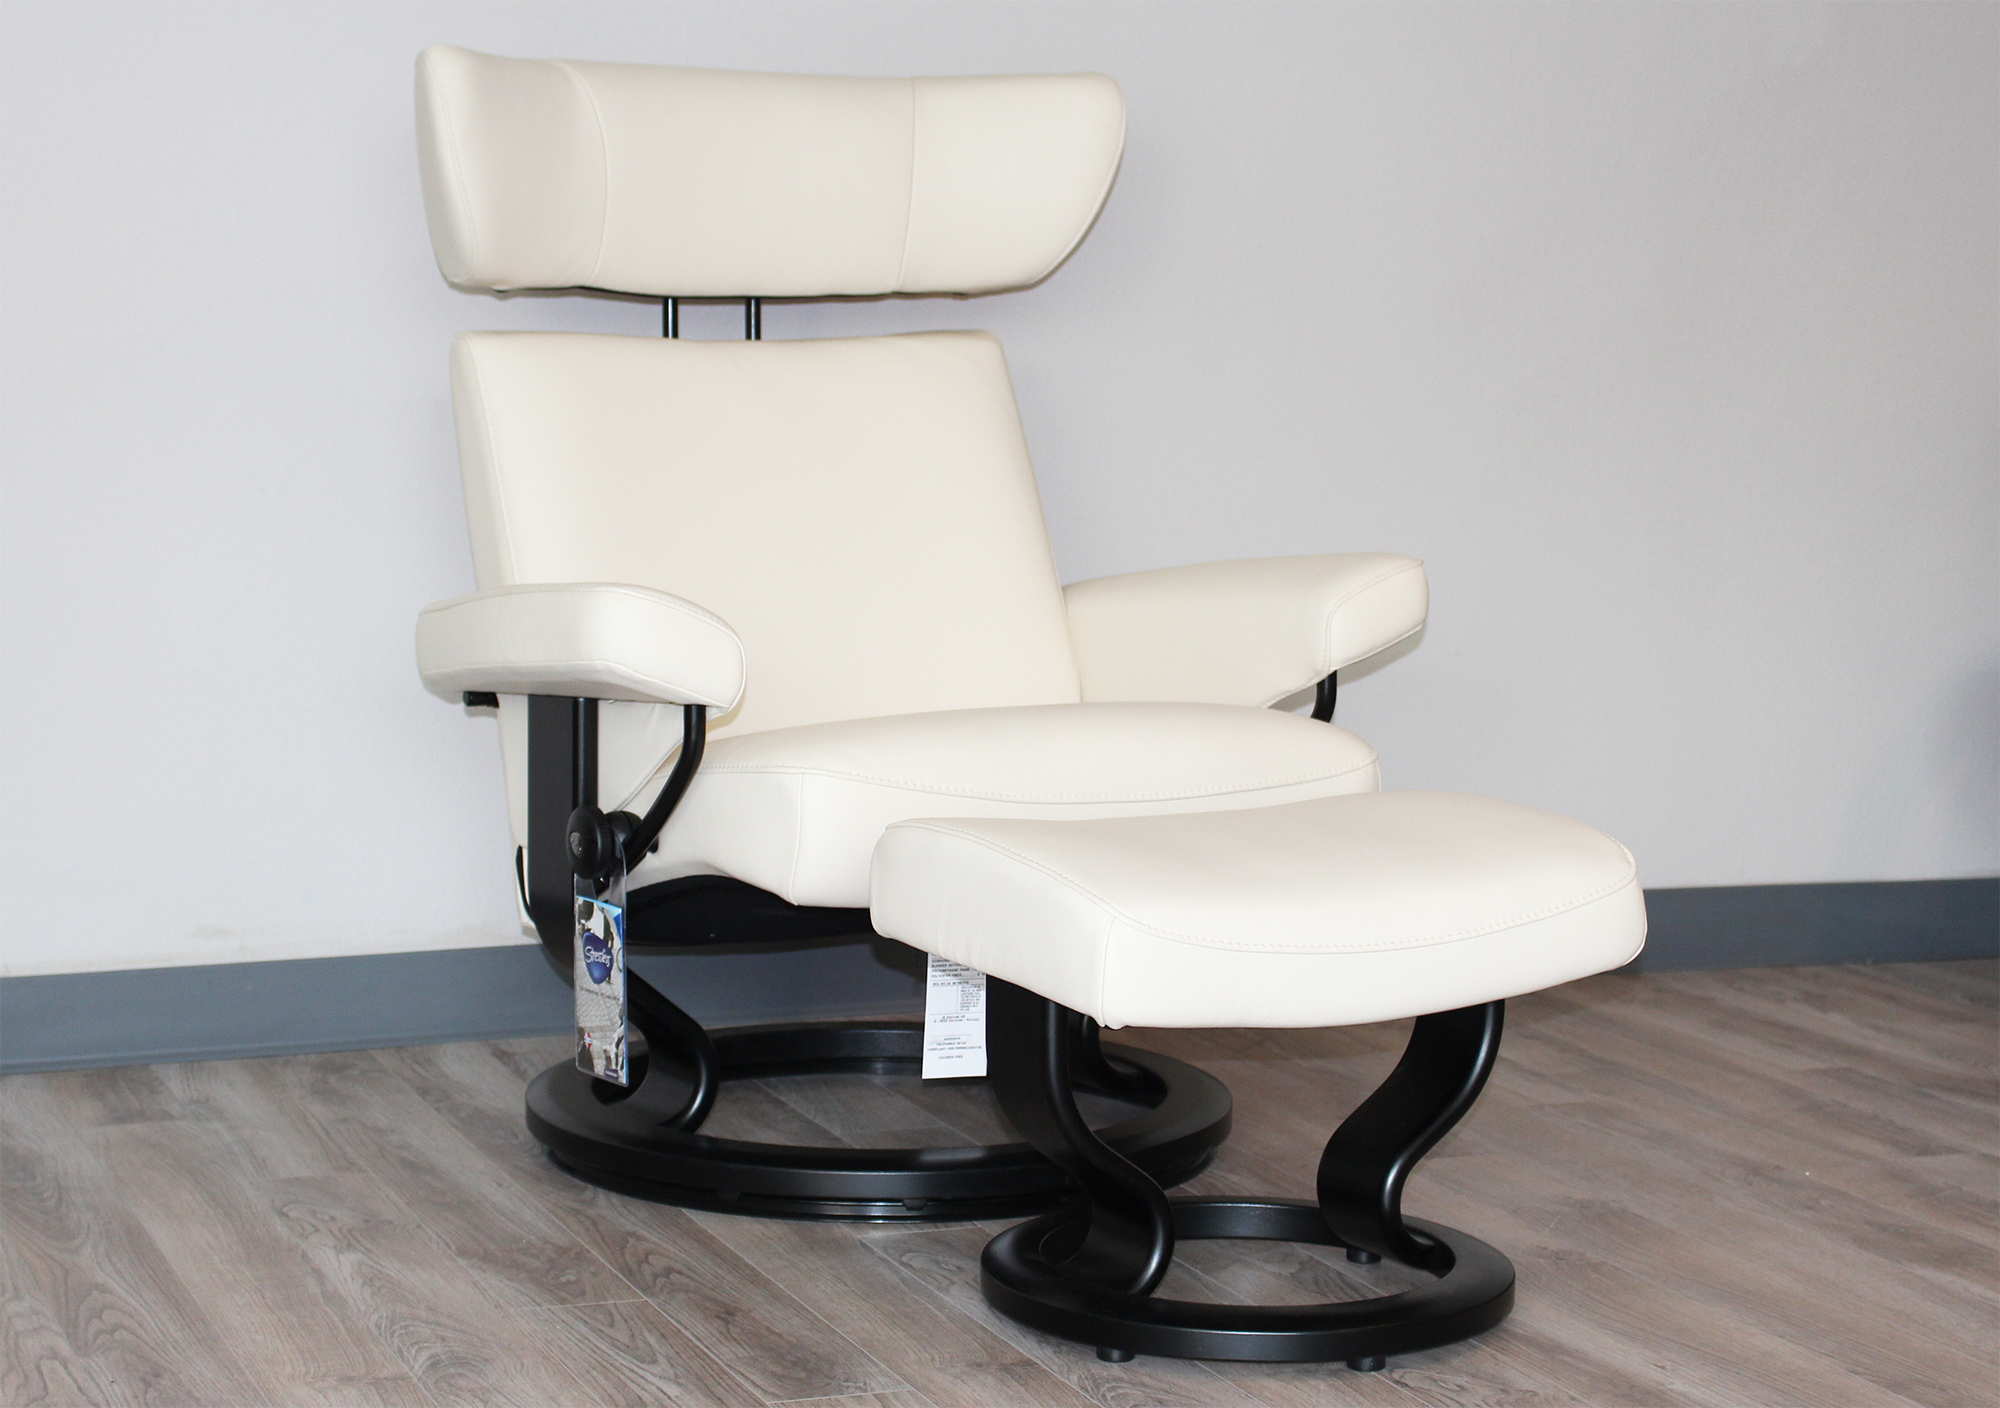 stressless viva paloma vanilla leather recliner chair and ottoman by